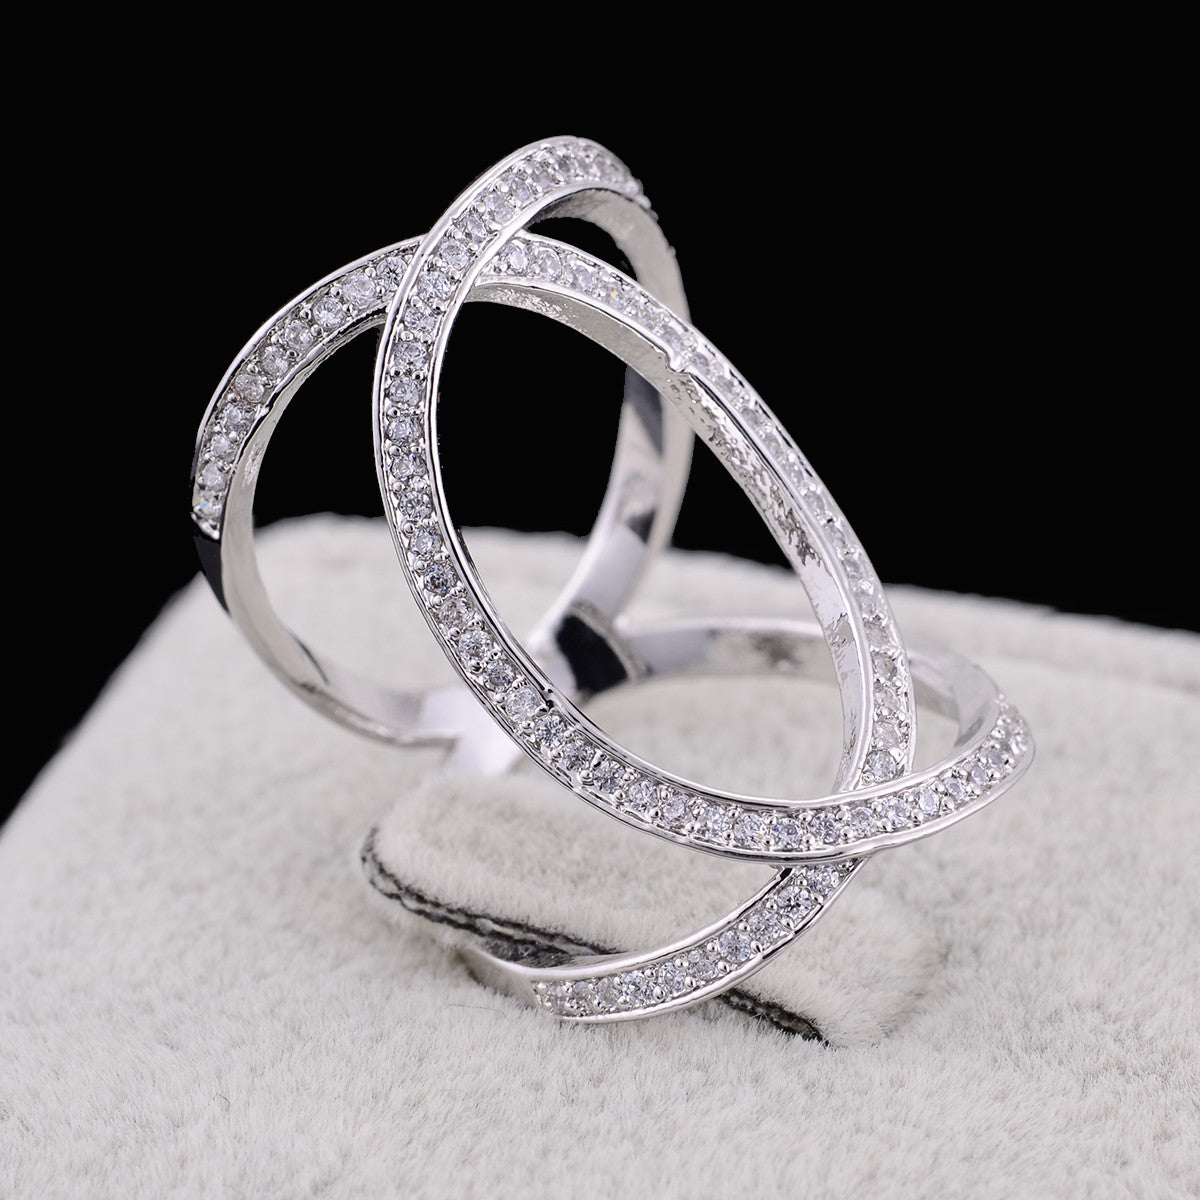 shopify-XOXO Diamond Crystal Rings In Rose Gold And Silver Tones-1